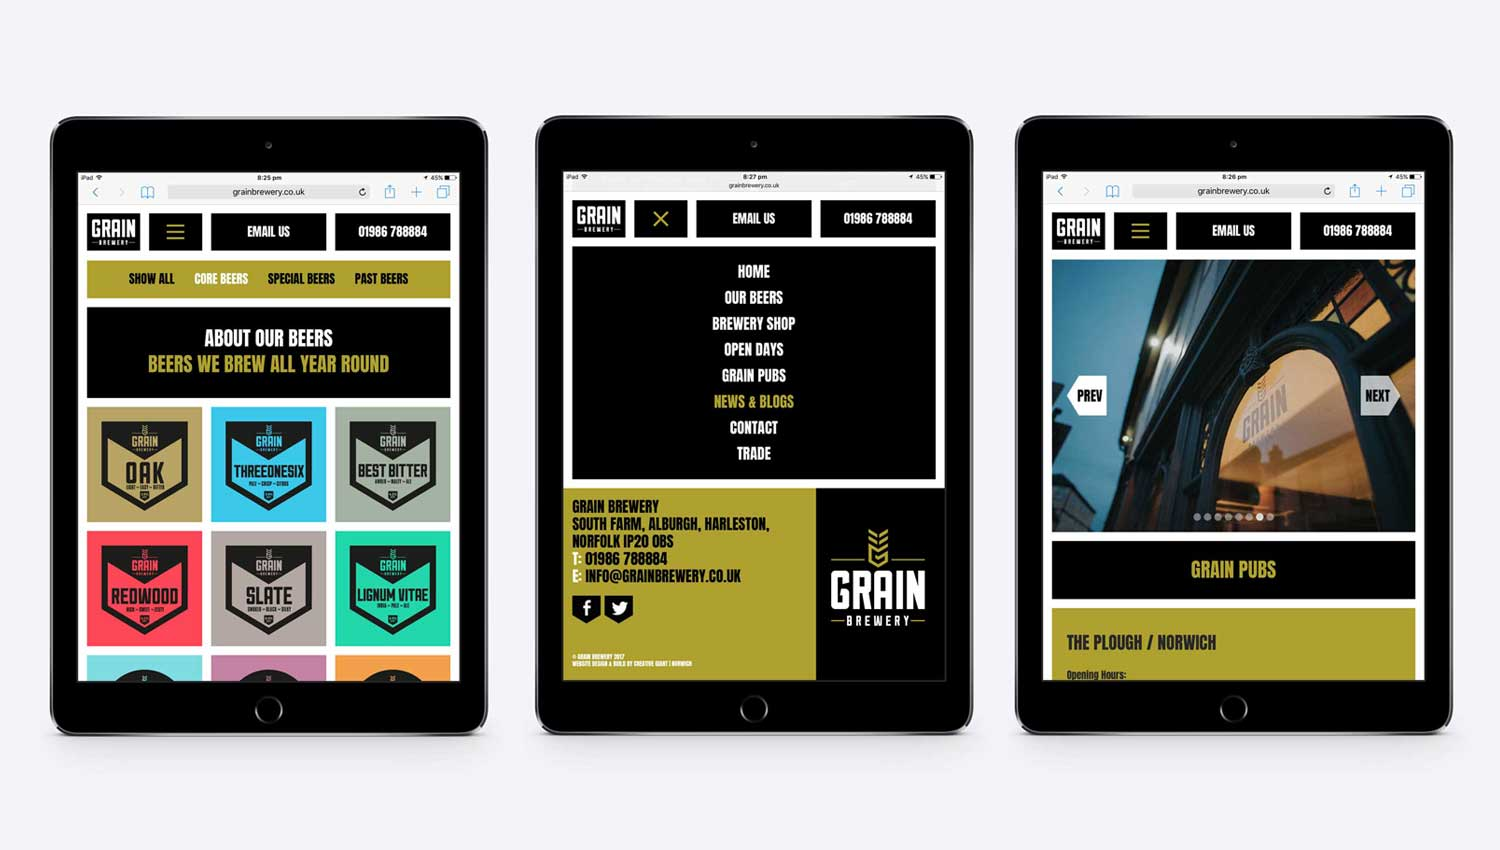 grain-brewery-website-design-ipad-responsive.jpg